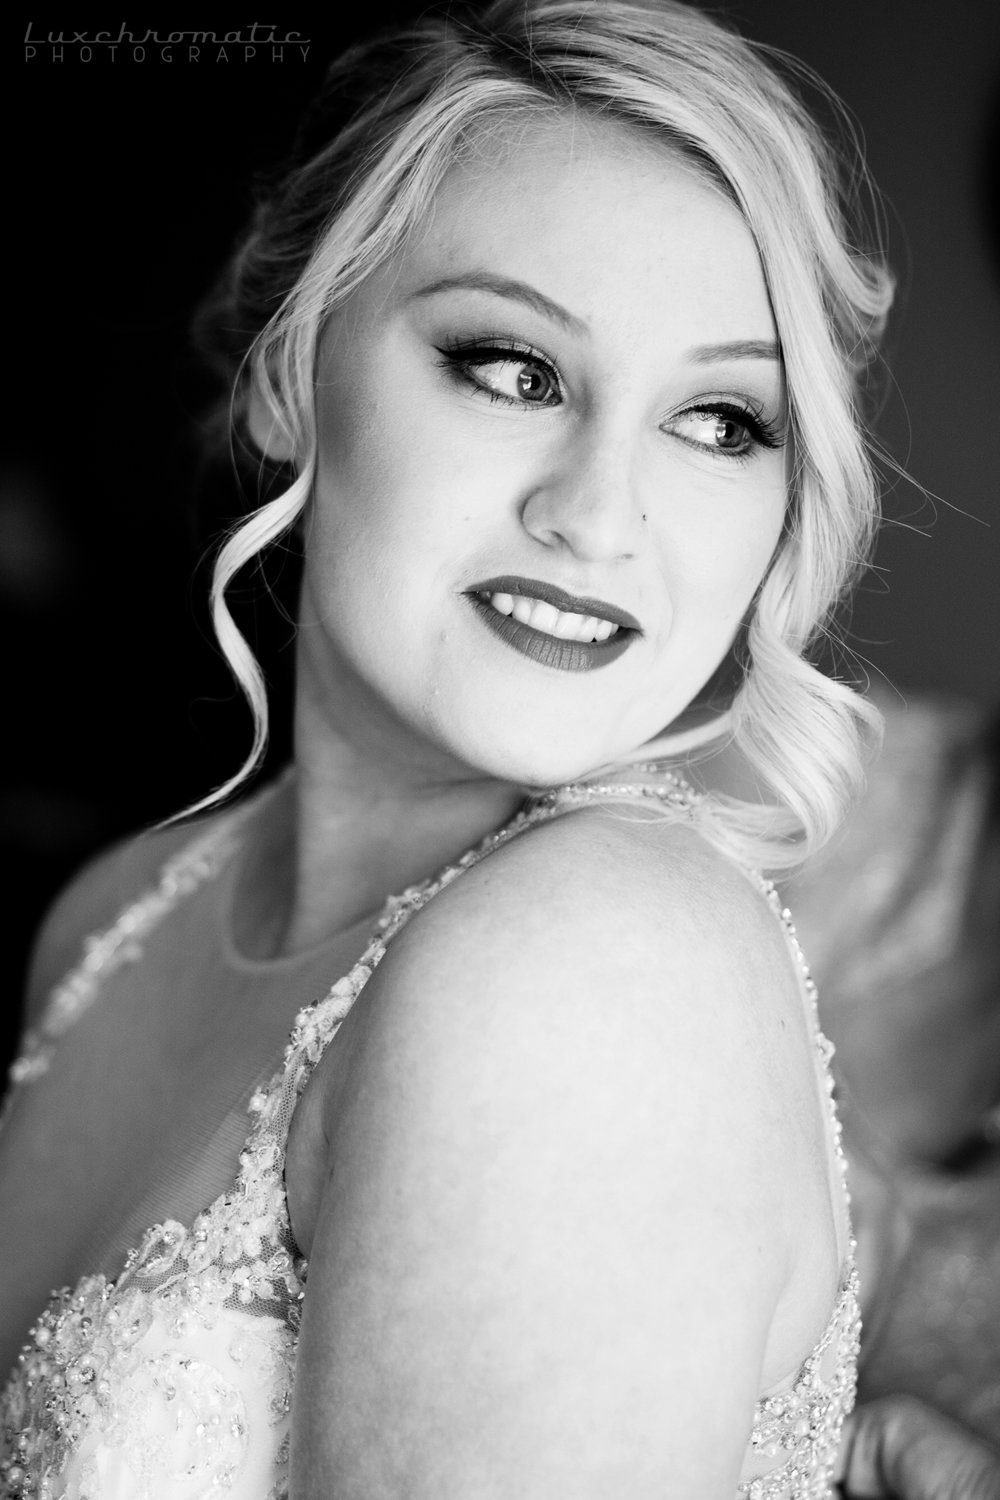 052017_Natalie_Travis-1031b-San-Francisco-Bay-Area-Fremont-East-Bay-Wedding-Church-Hotel-Silicon-Valley-Bride-Gown-Dress-Groom-Luxchromatic-Portrait-Sony-Alpha-a7Rii-Interfit-Profoto-Photographer-Photography.jpg